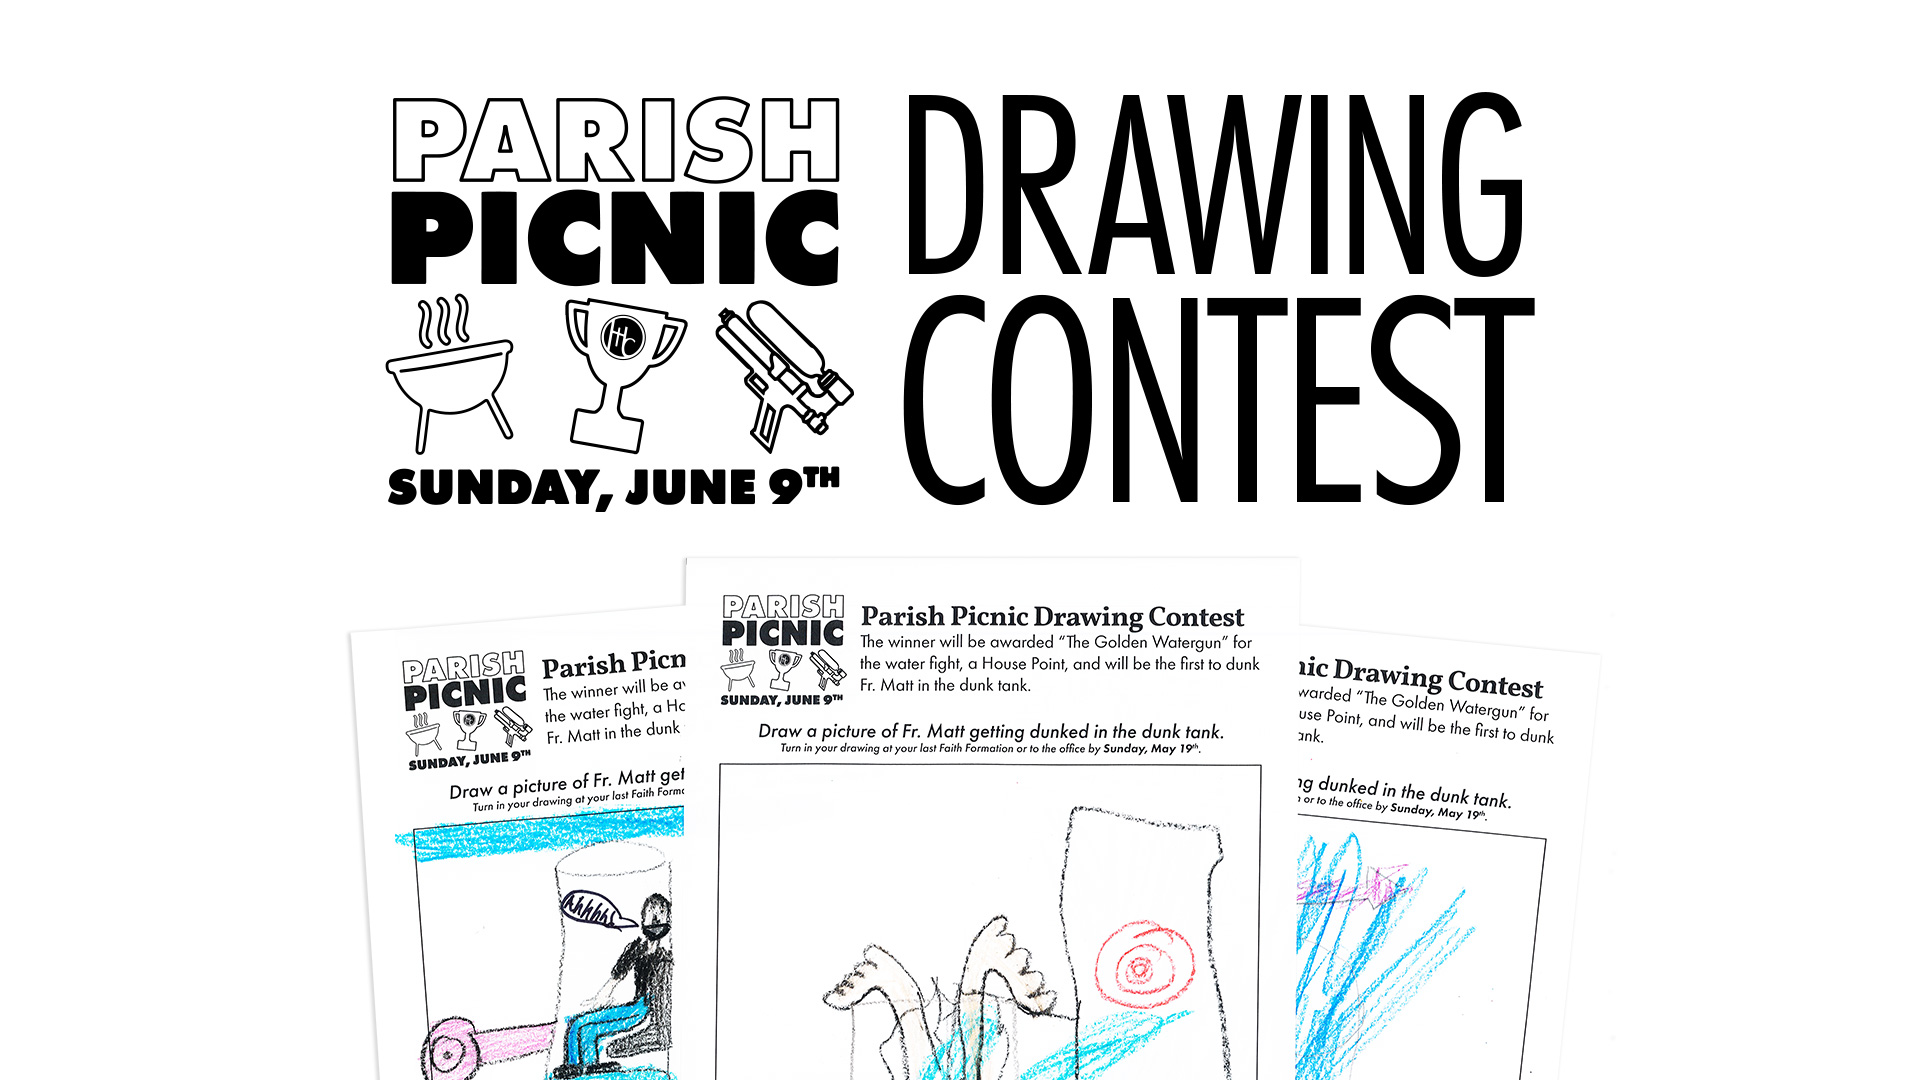 parish-picnic-drawing-contest-header.jpg